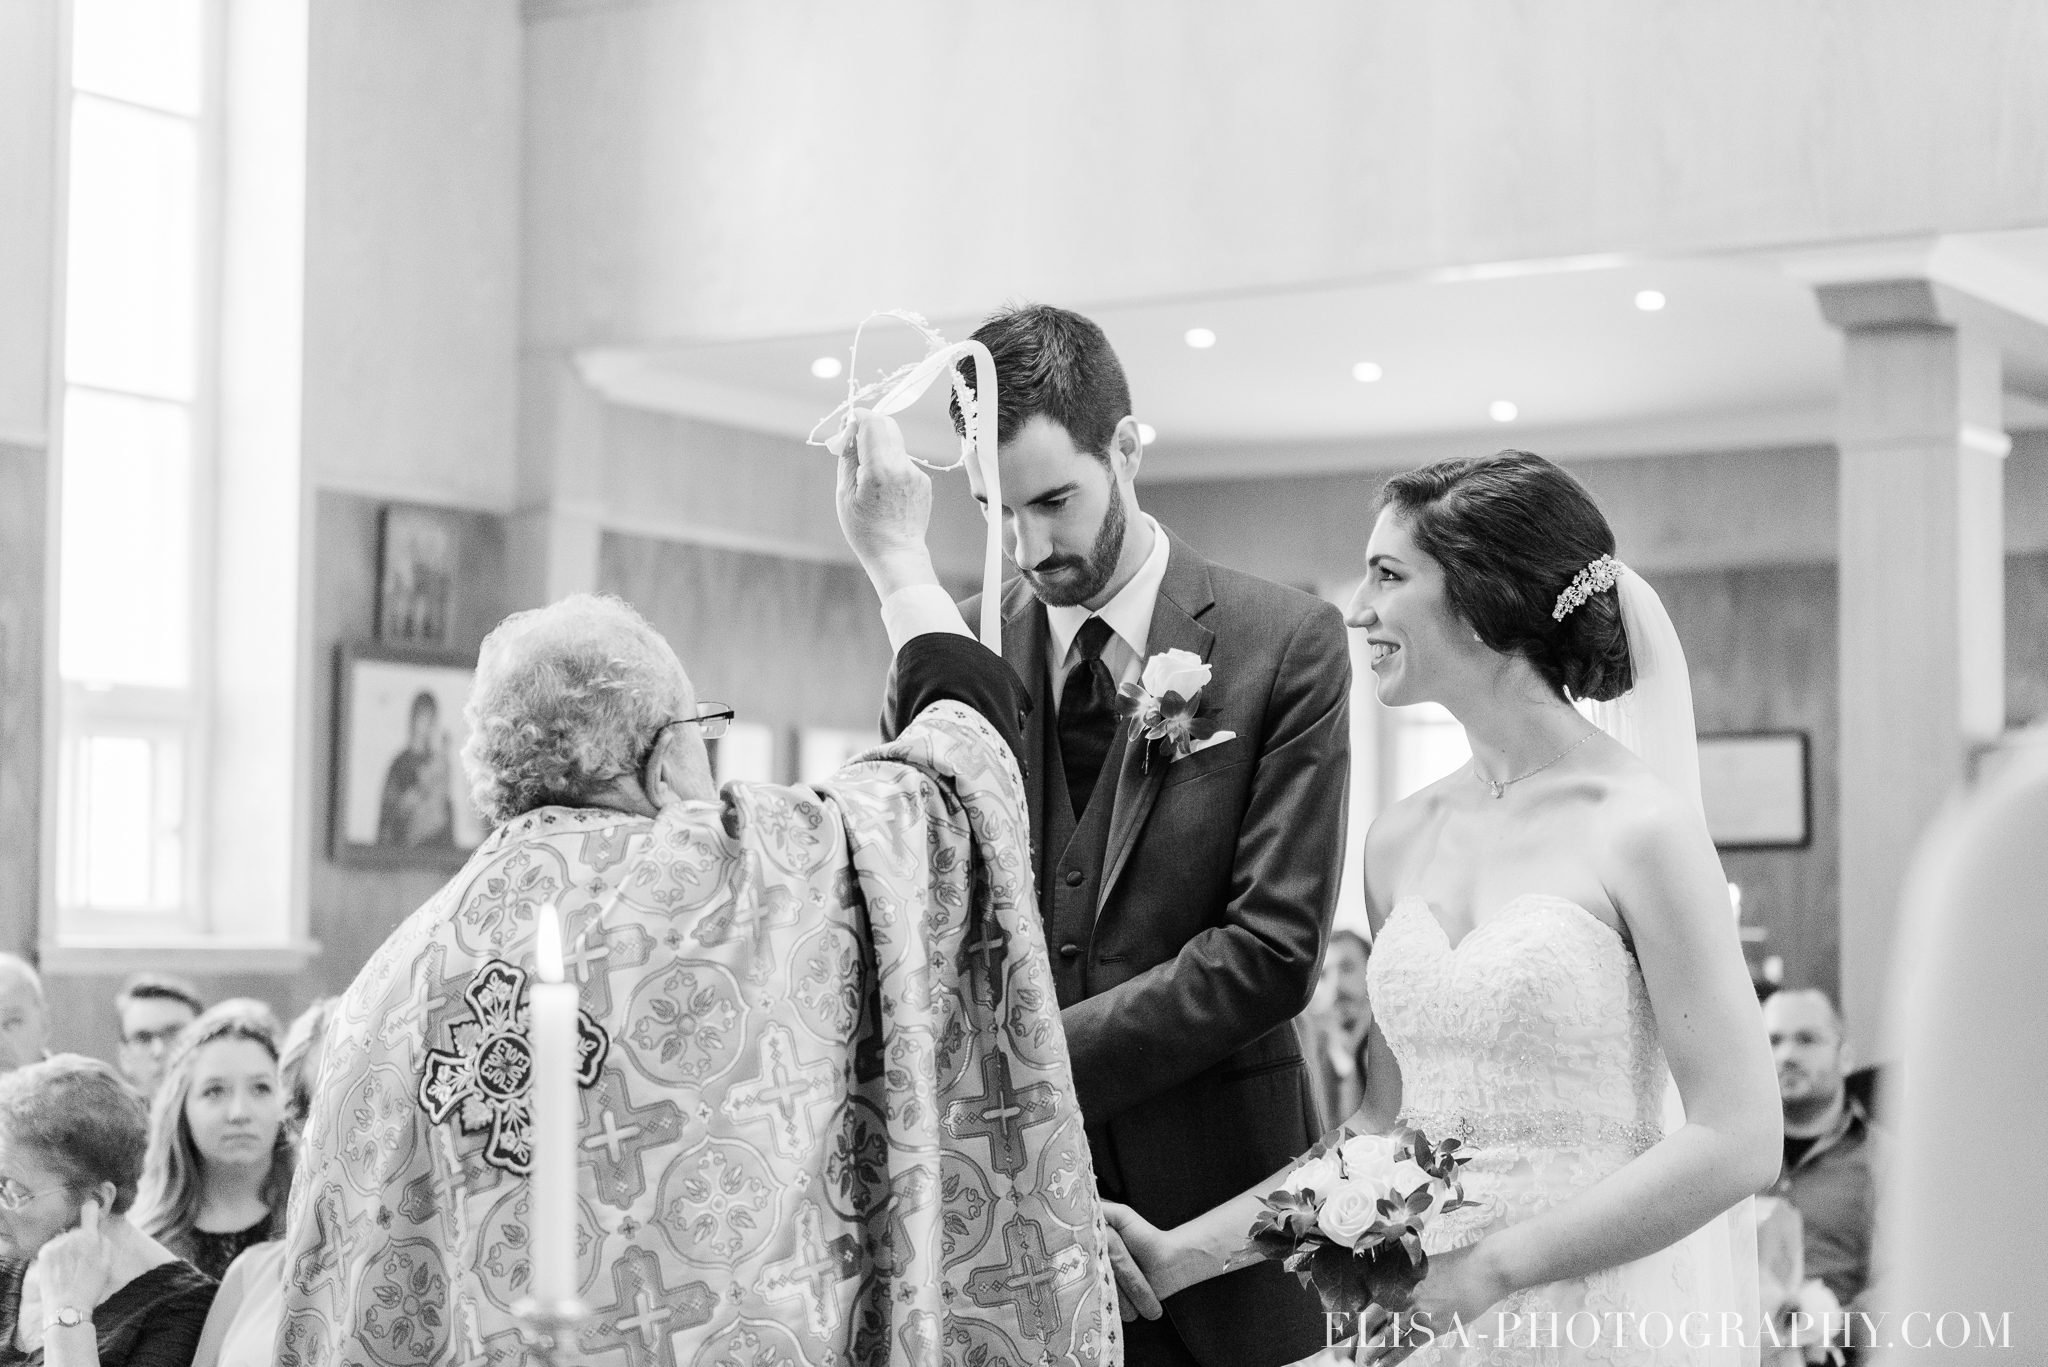 photo mariage quebec eglise orthodoxe ceremonie grecque ceremonie traditionelle couronnement 7039 1 - Galerie photos de mariage